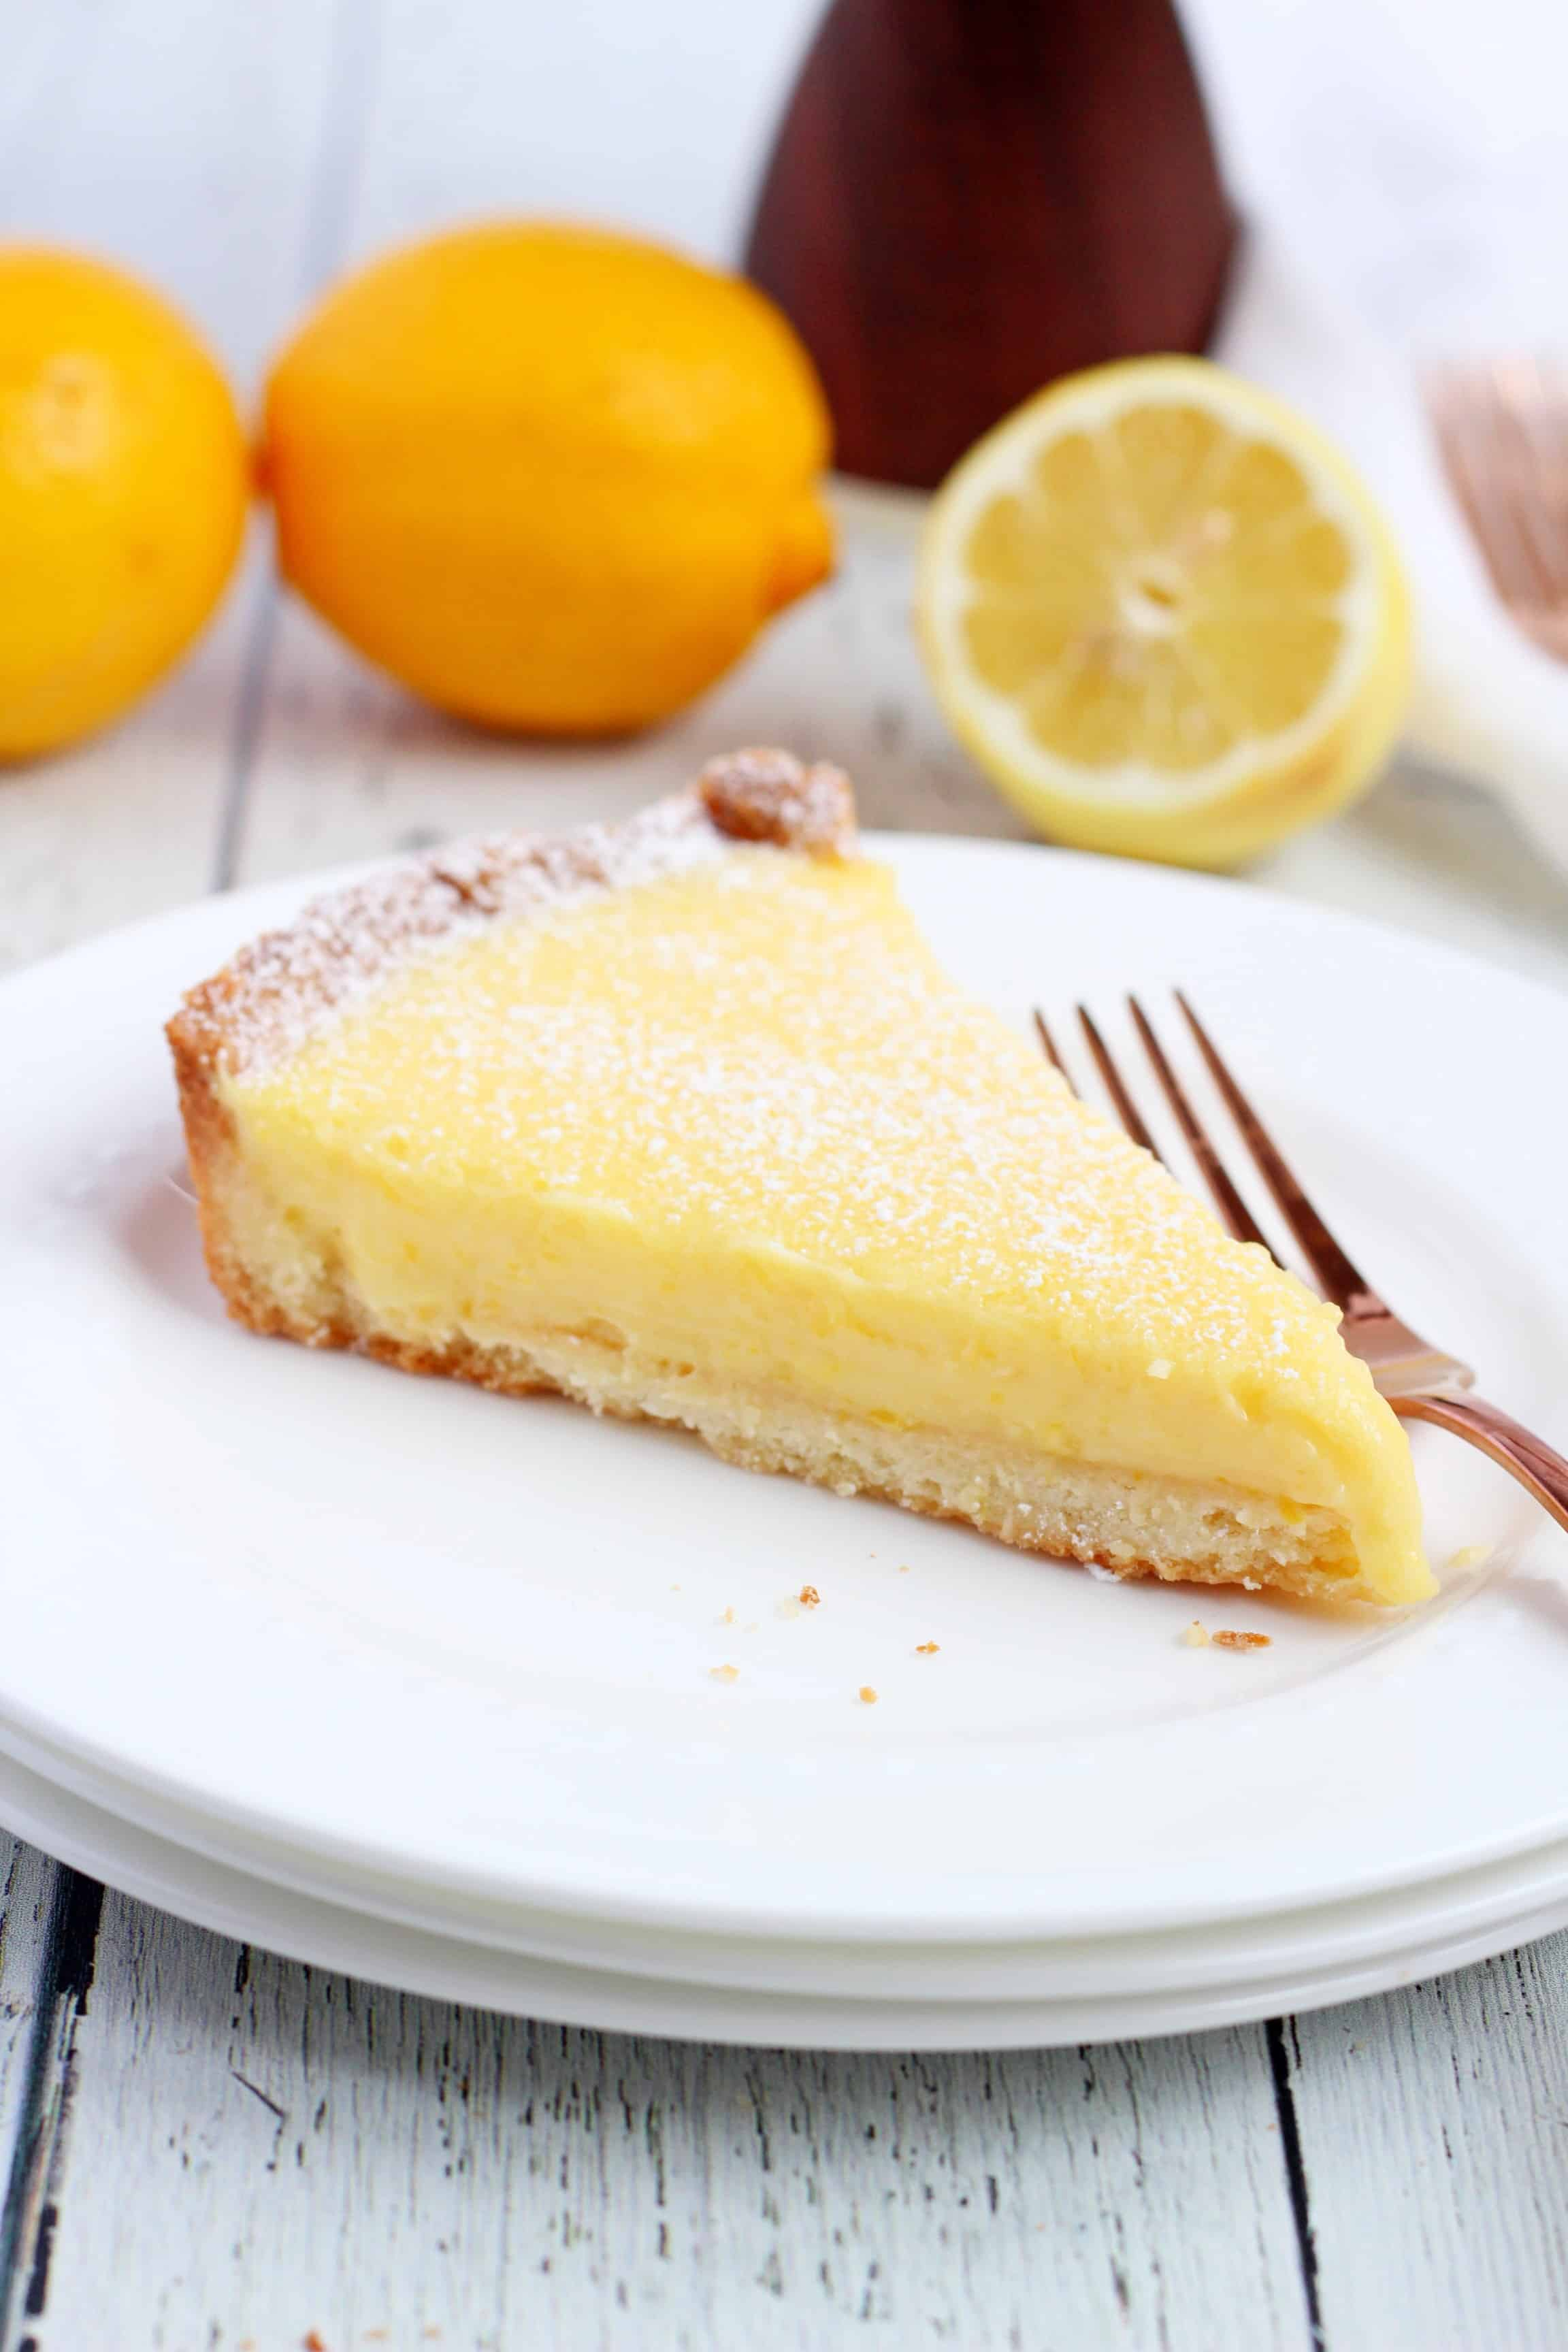 Lemon tart slice on two white plates